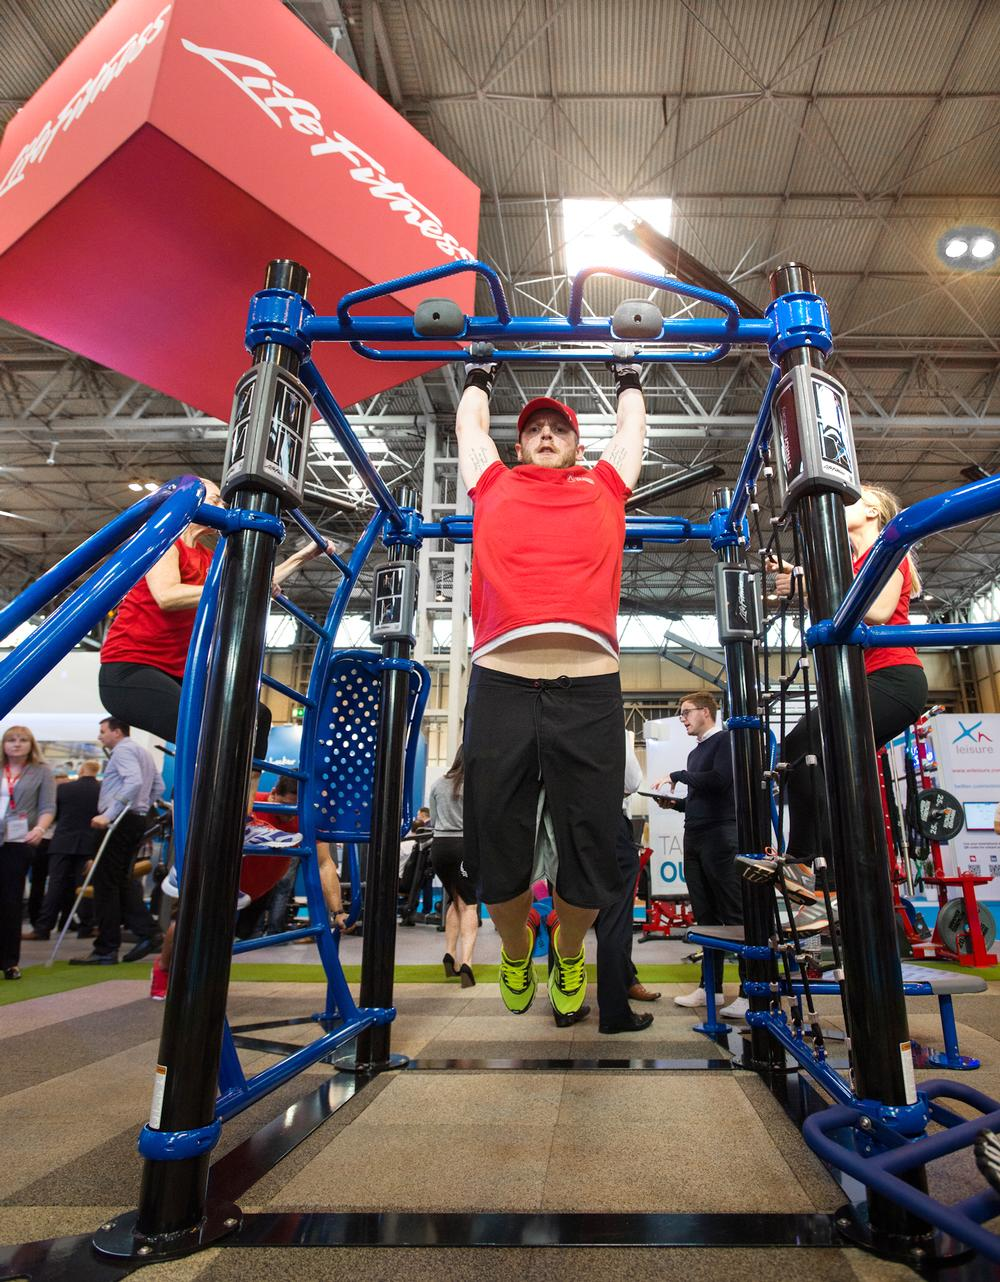 Life Fitness launched a record number of new products at this year's show